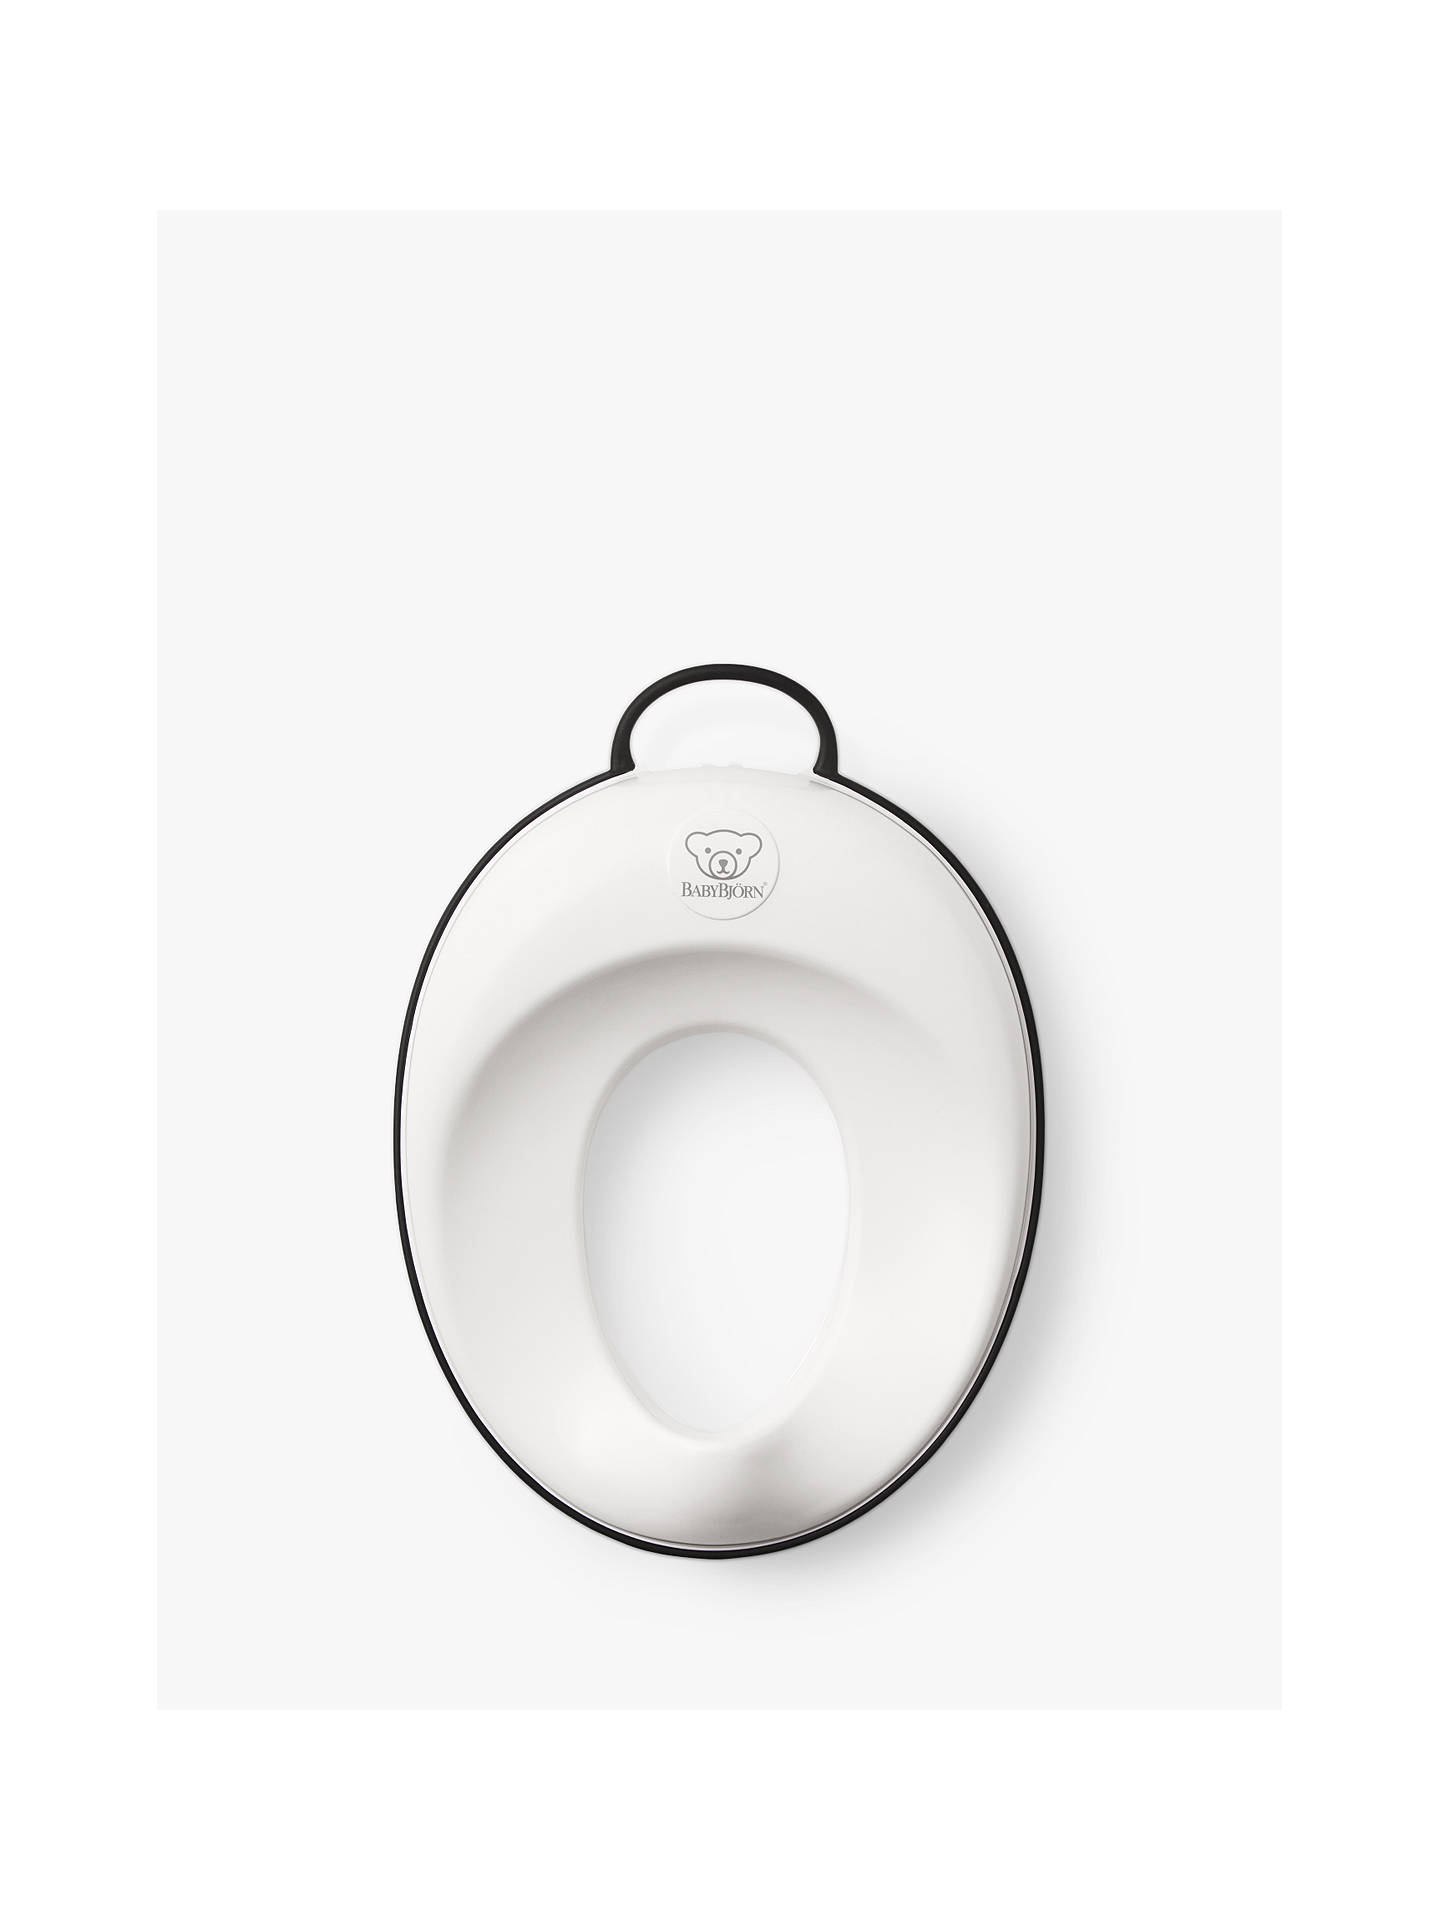 cba12d6d441 BabyBjörn Toilet Trainer Seat